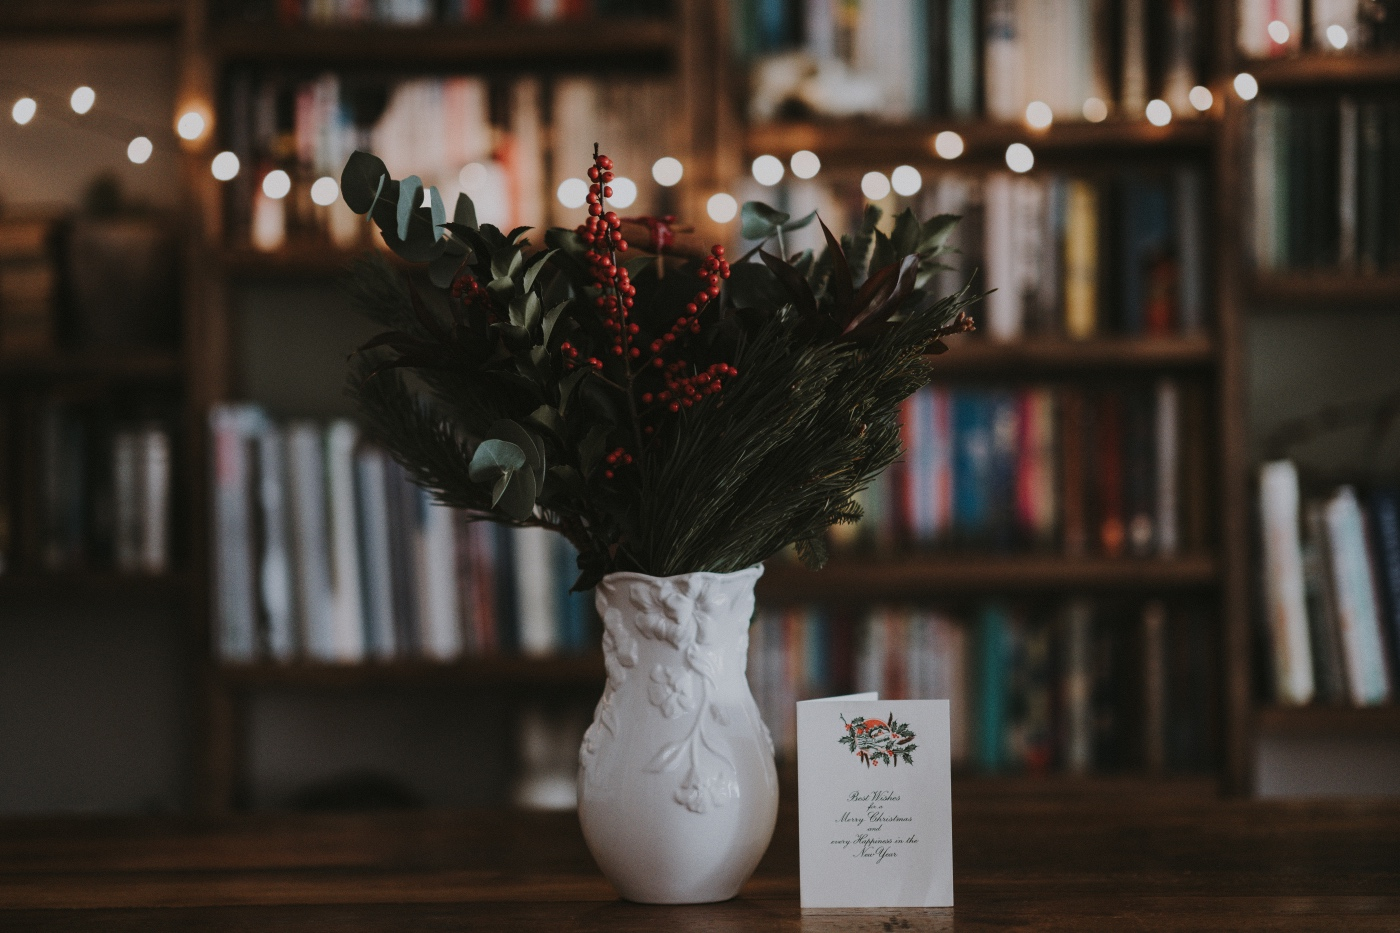 how to make a winter bouquet diy - flowers by pop shop america